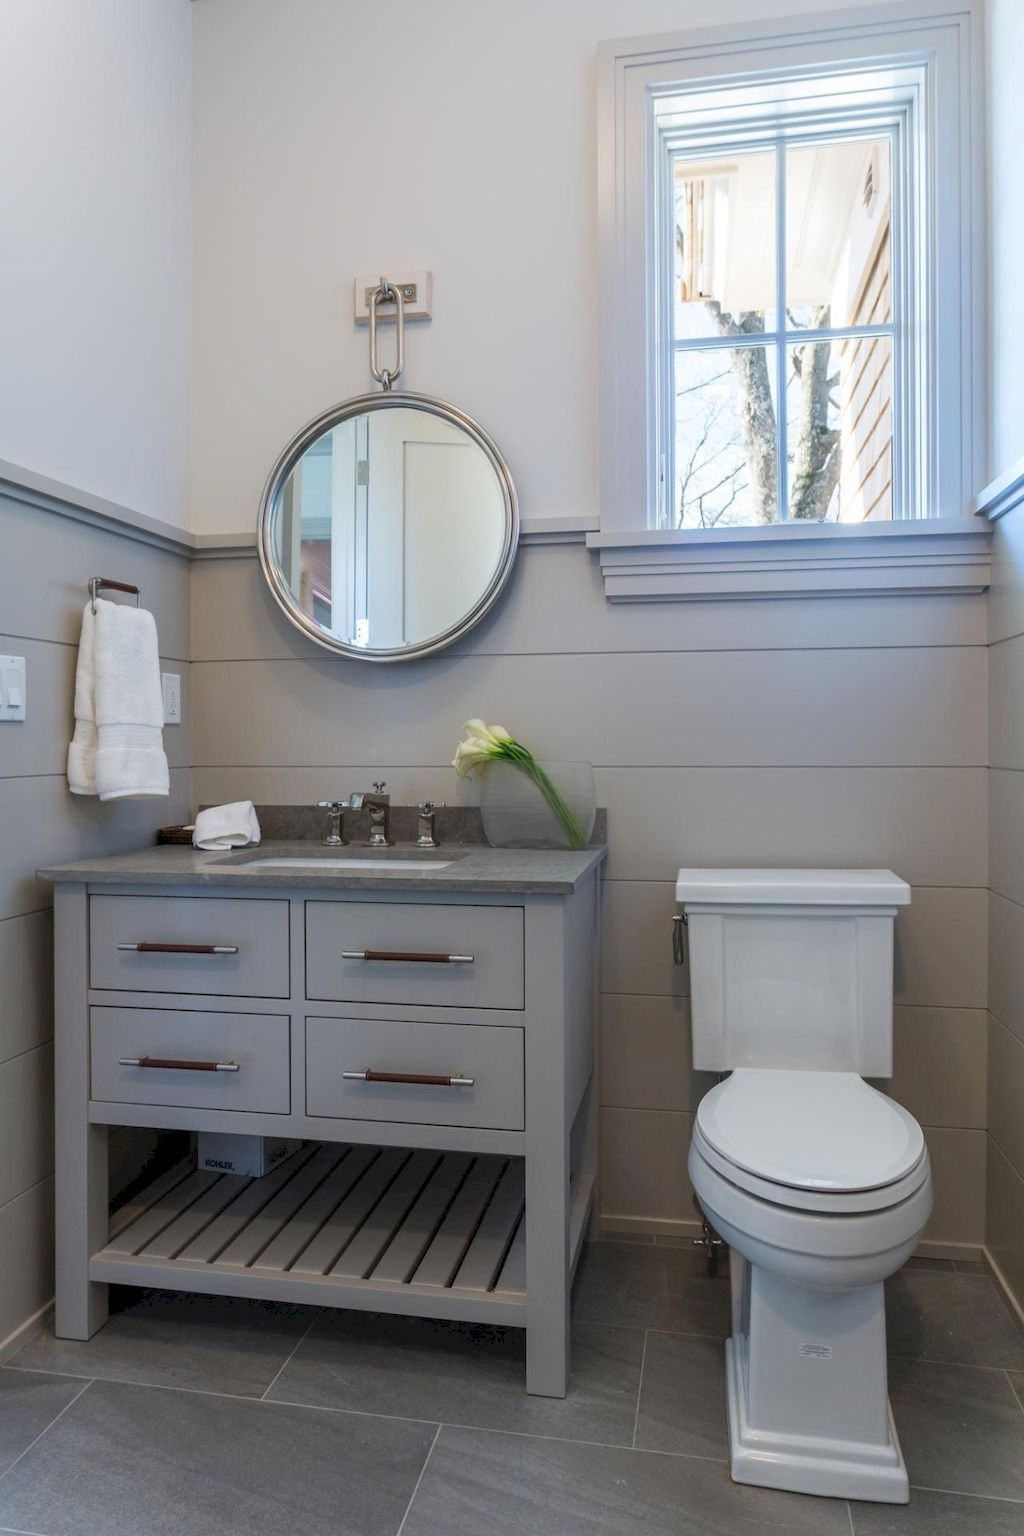 adorable 50 best small bathroom remodel ideas on a budget